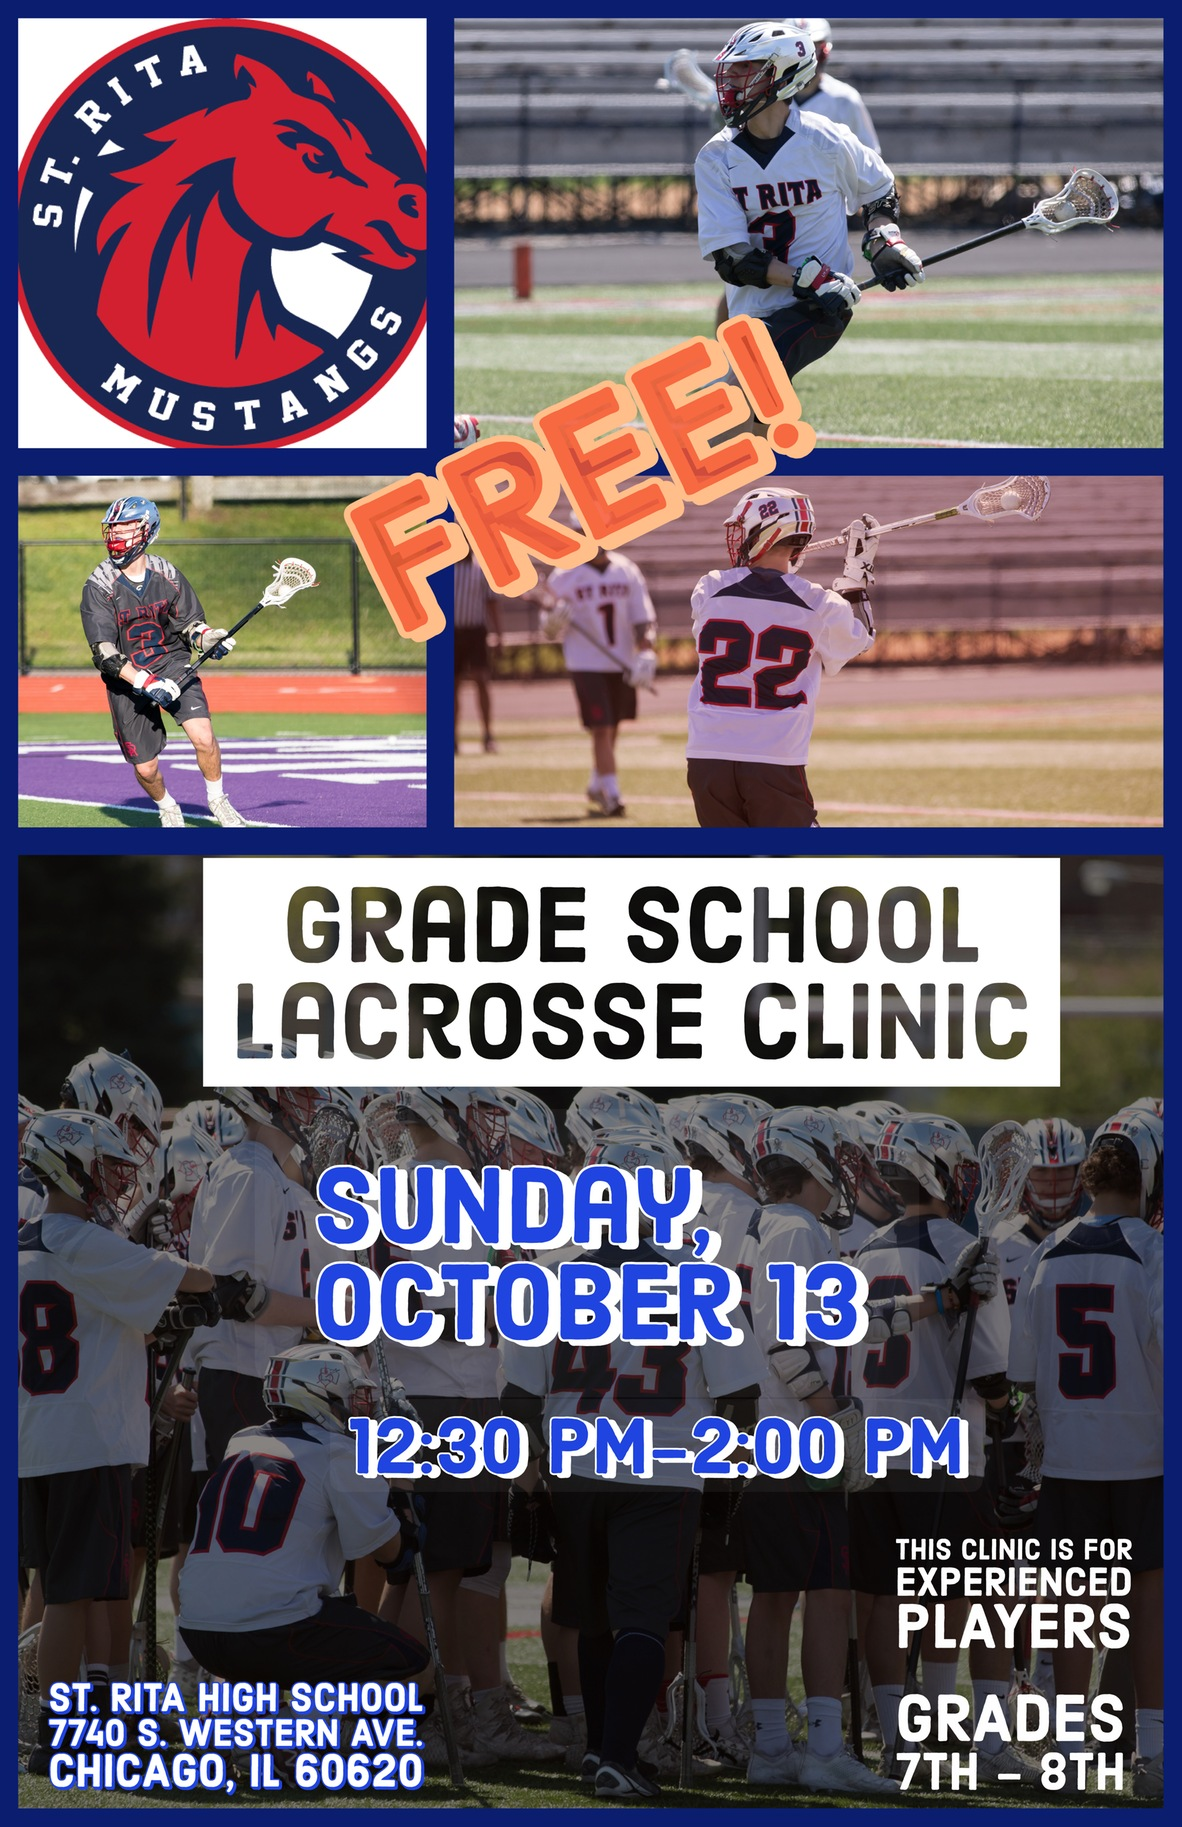 Fall Lacrosse Clinic! October 13th from 12:30-2:00pm